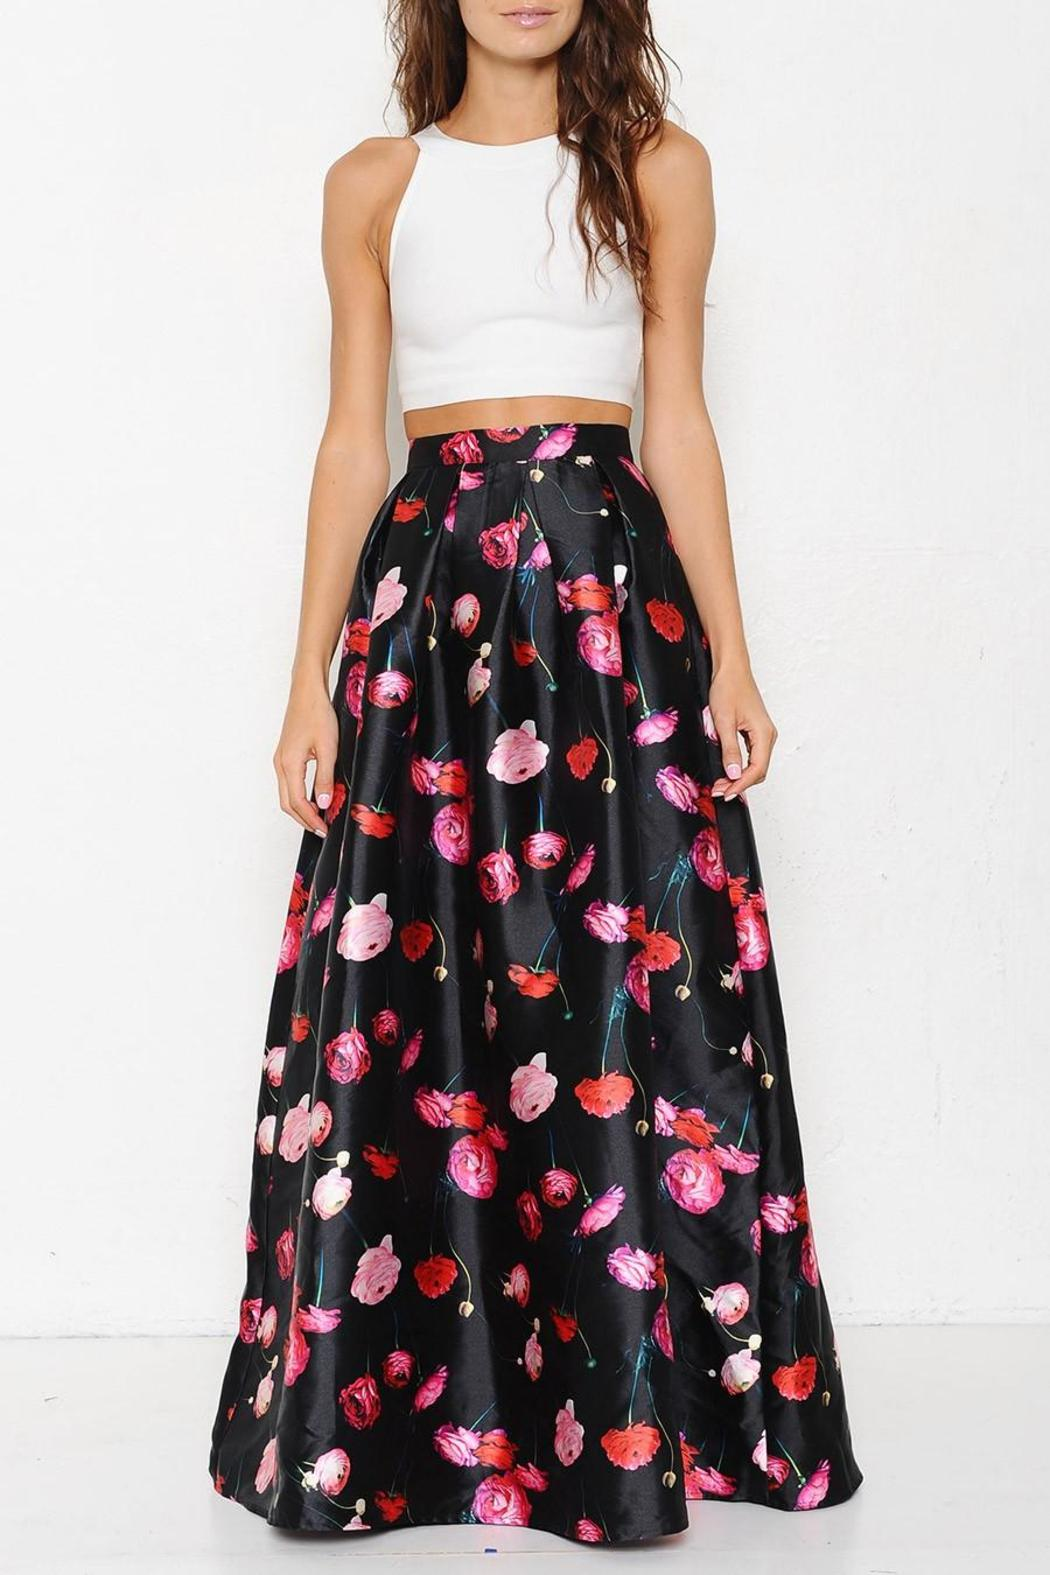 92d551181d2d Latiste by AMY Floral Maxi Skirt from Georgia by High Maintenance ...